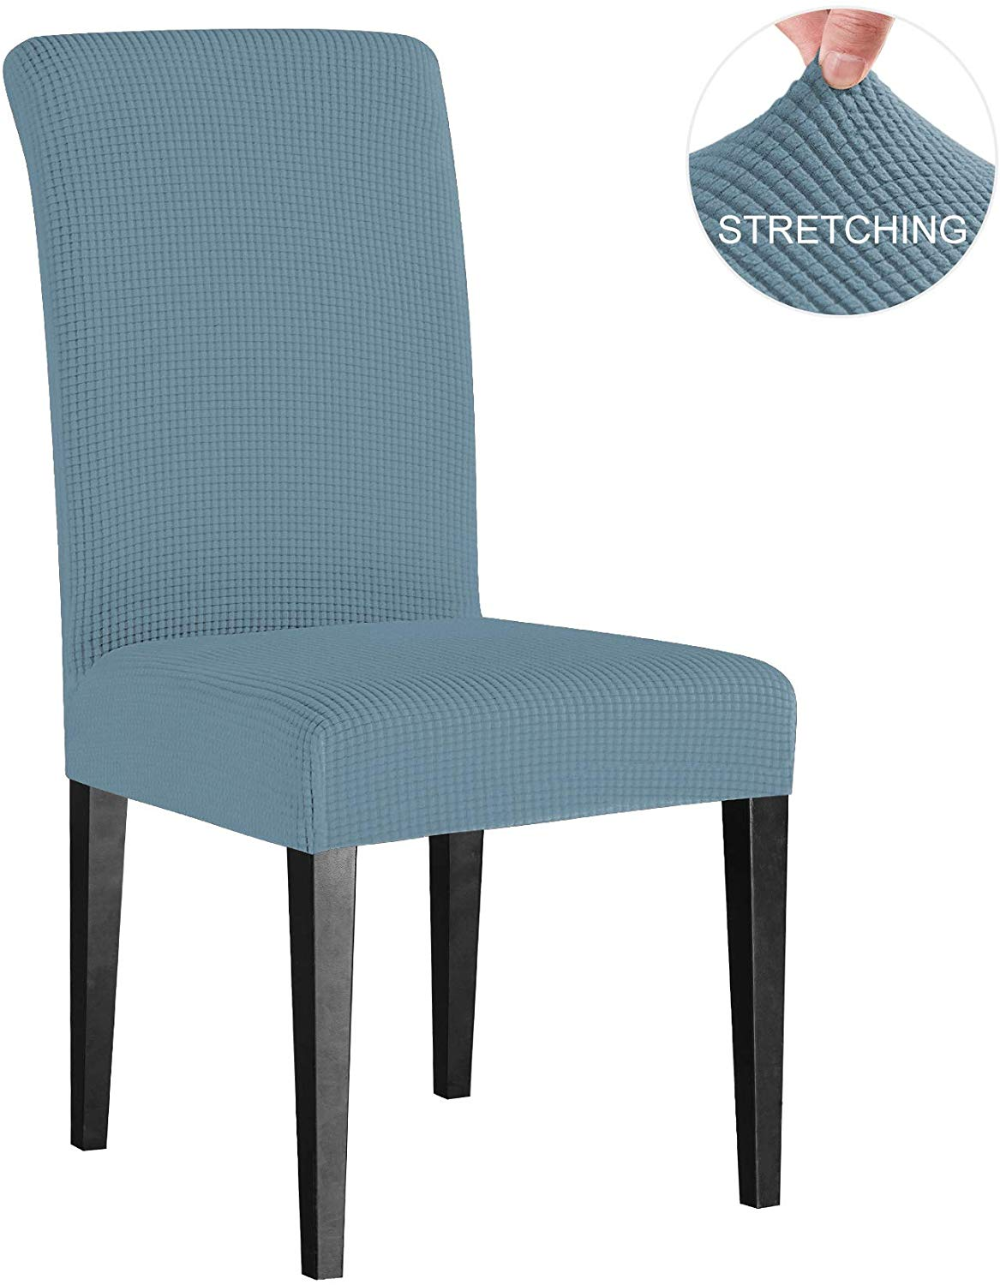 Subrtex Dyed Jacquard Stretch Chair Cover Sets, Dining